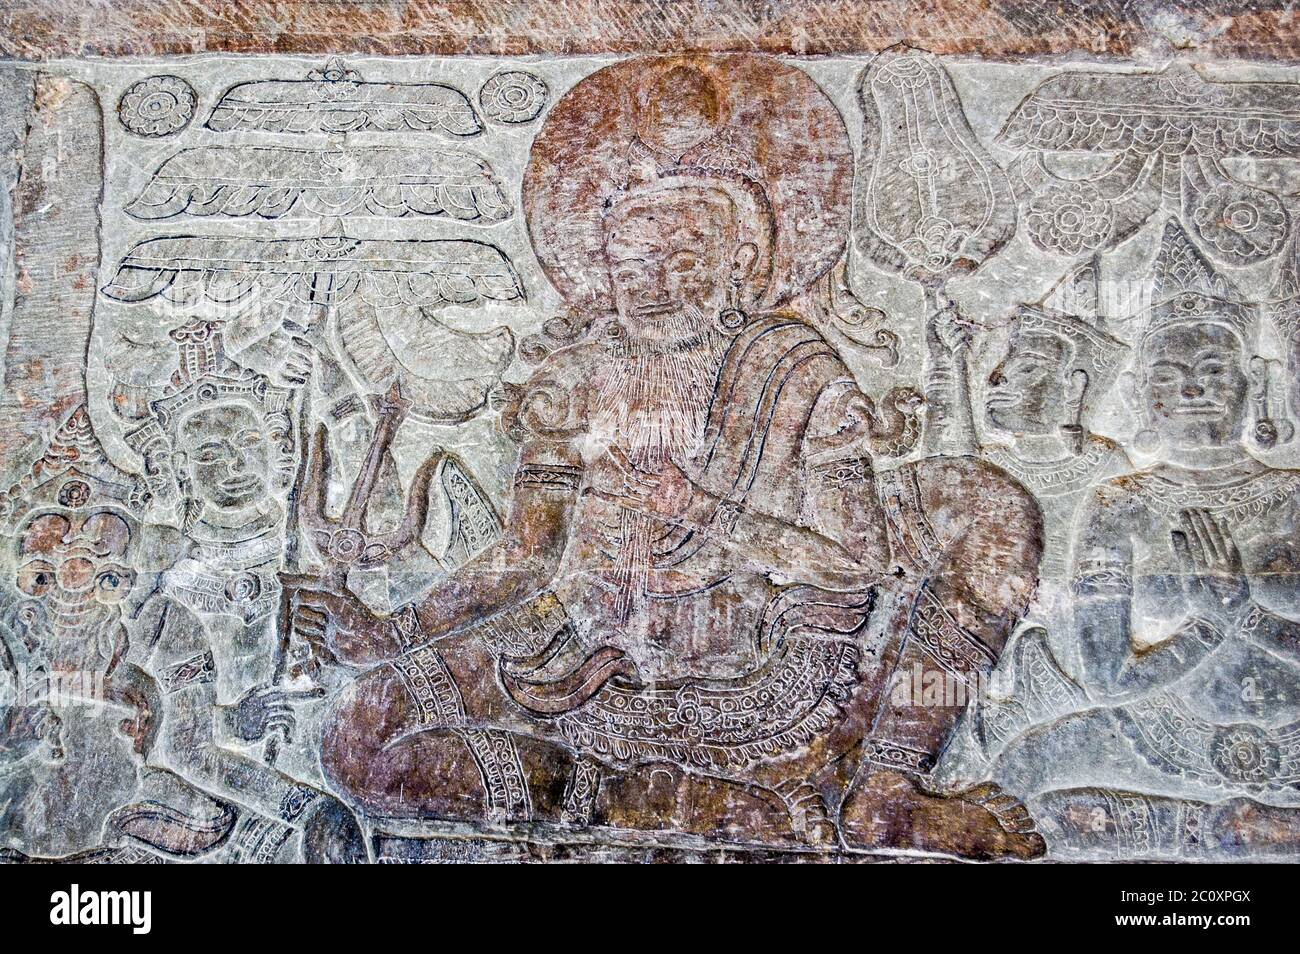 Bas relief carving of a old man on the wall of Angkor Wat temple in Siem Reap, Cambodia. Stock Photo